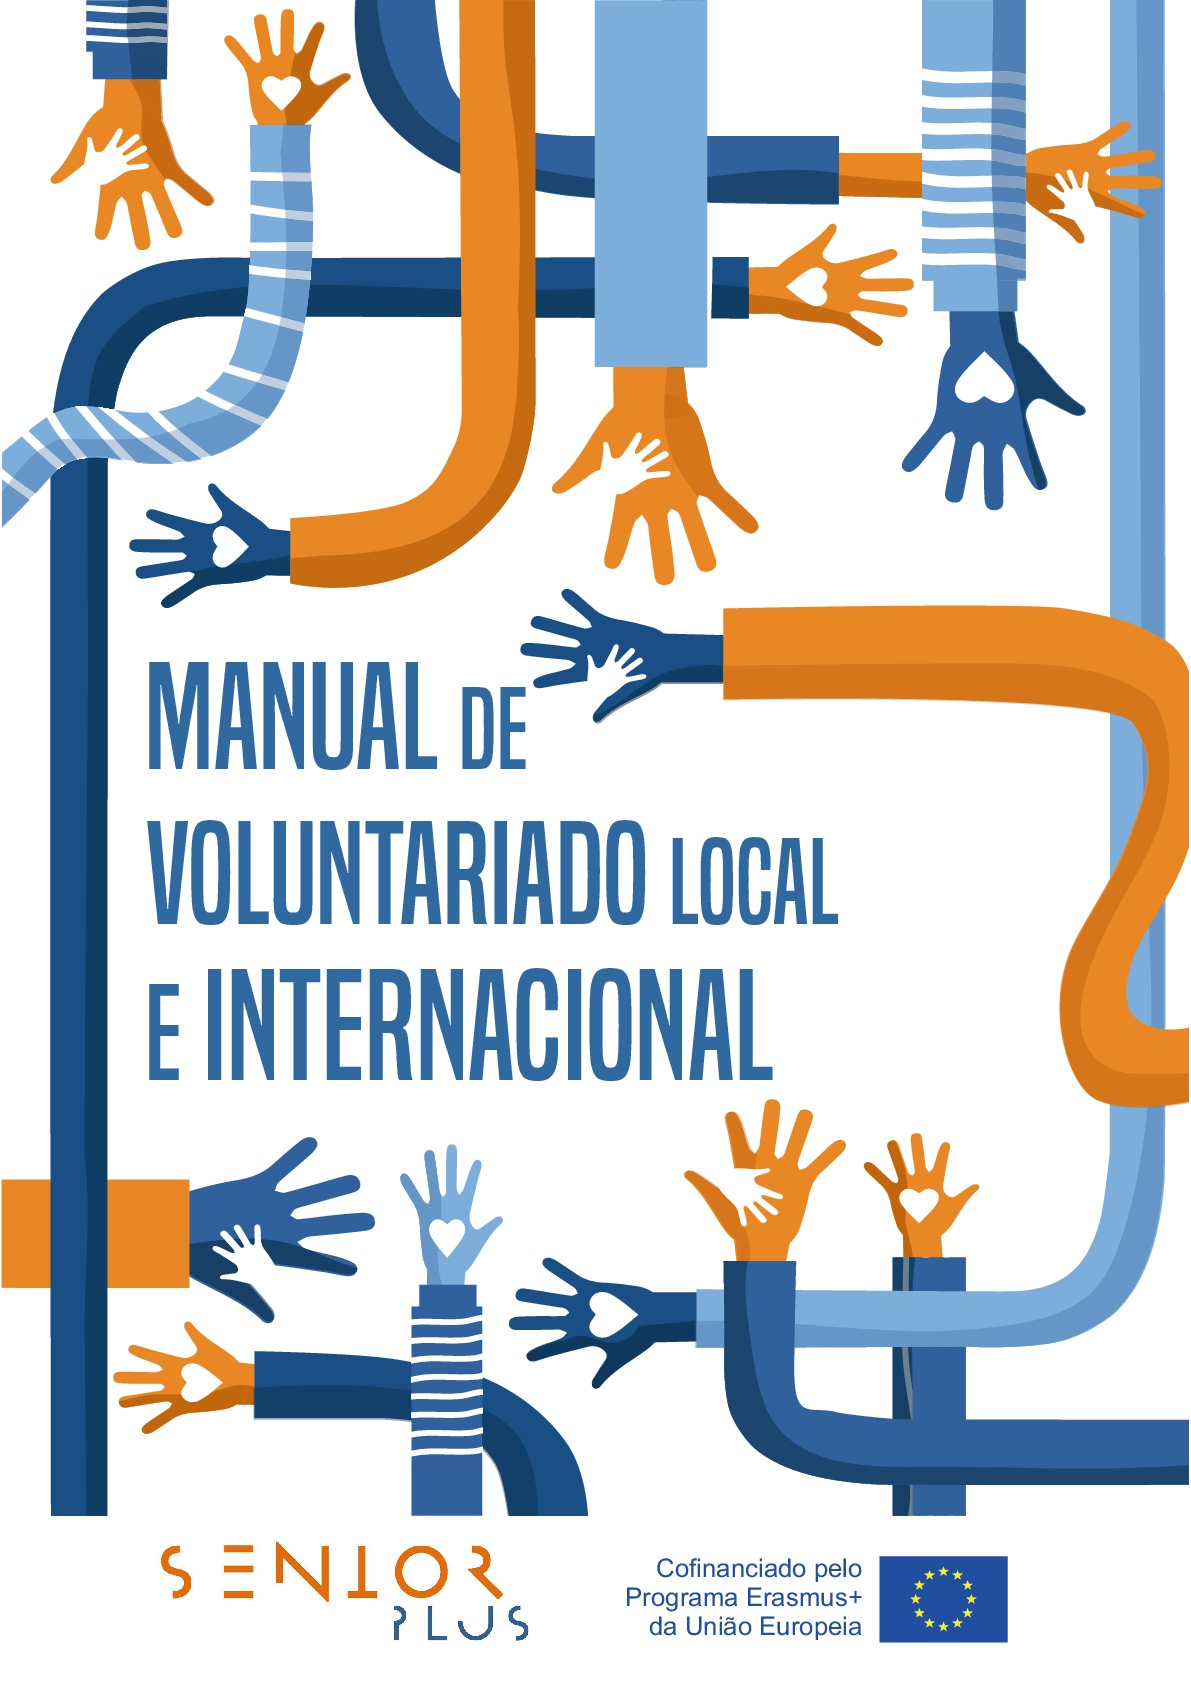 (PT) Guide on International and Local Voluntary Work